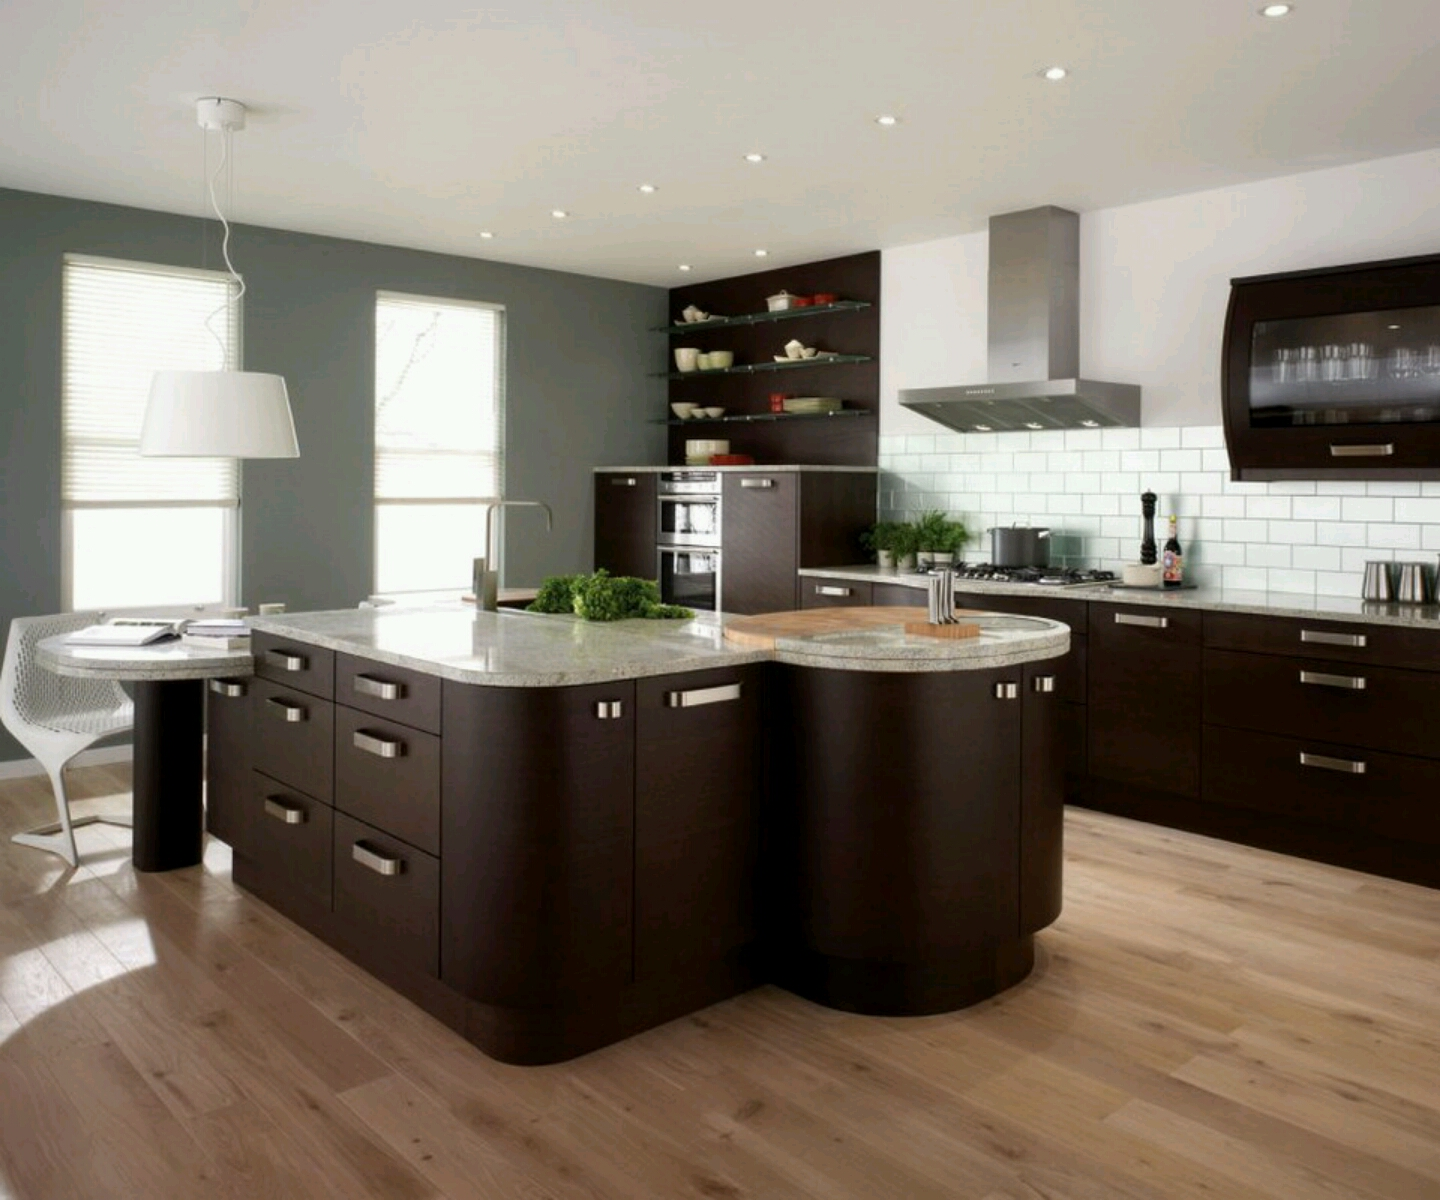 Contemporary Kitchen: External Home Design, Interior